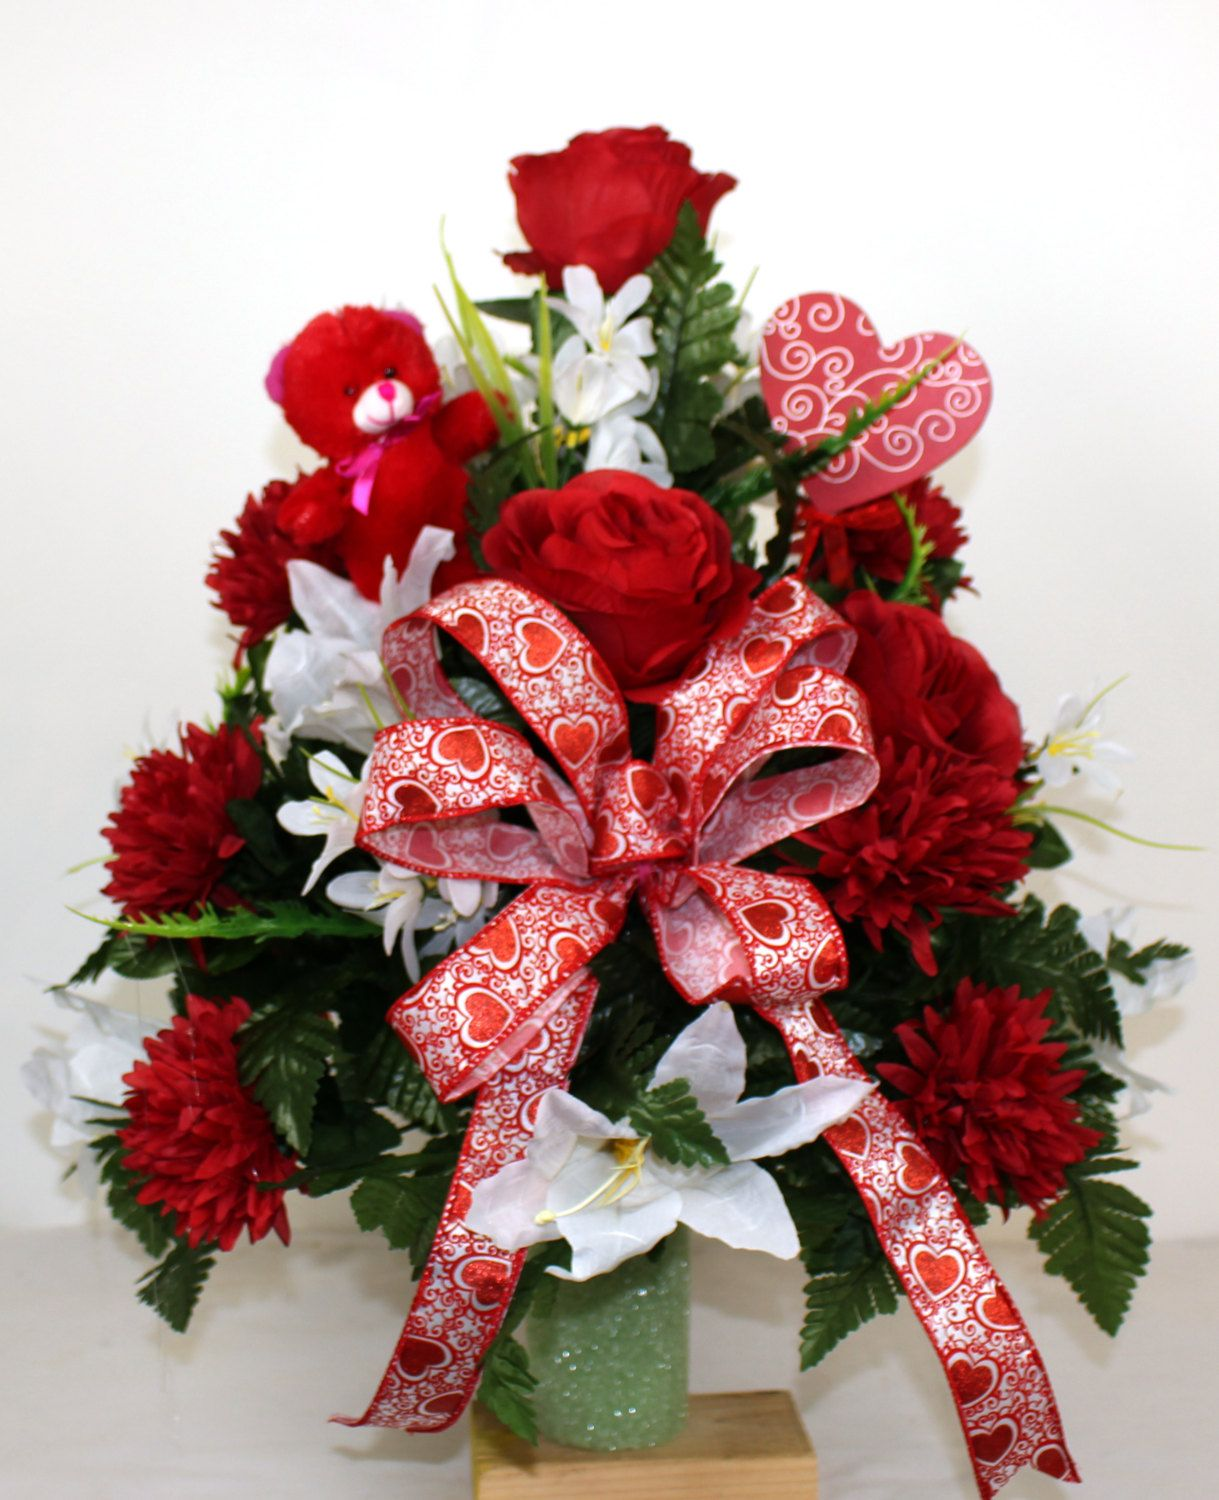 Beautiful red carnations and white lilies 3 inch cemetery vase beautiful red carnations and white lilies 3 inch cemetery vase flower arrangement by crazyboutdeco on etsy reviewsmspy